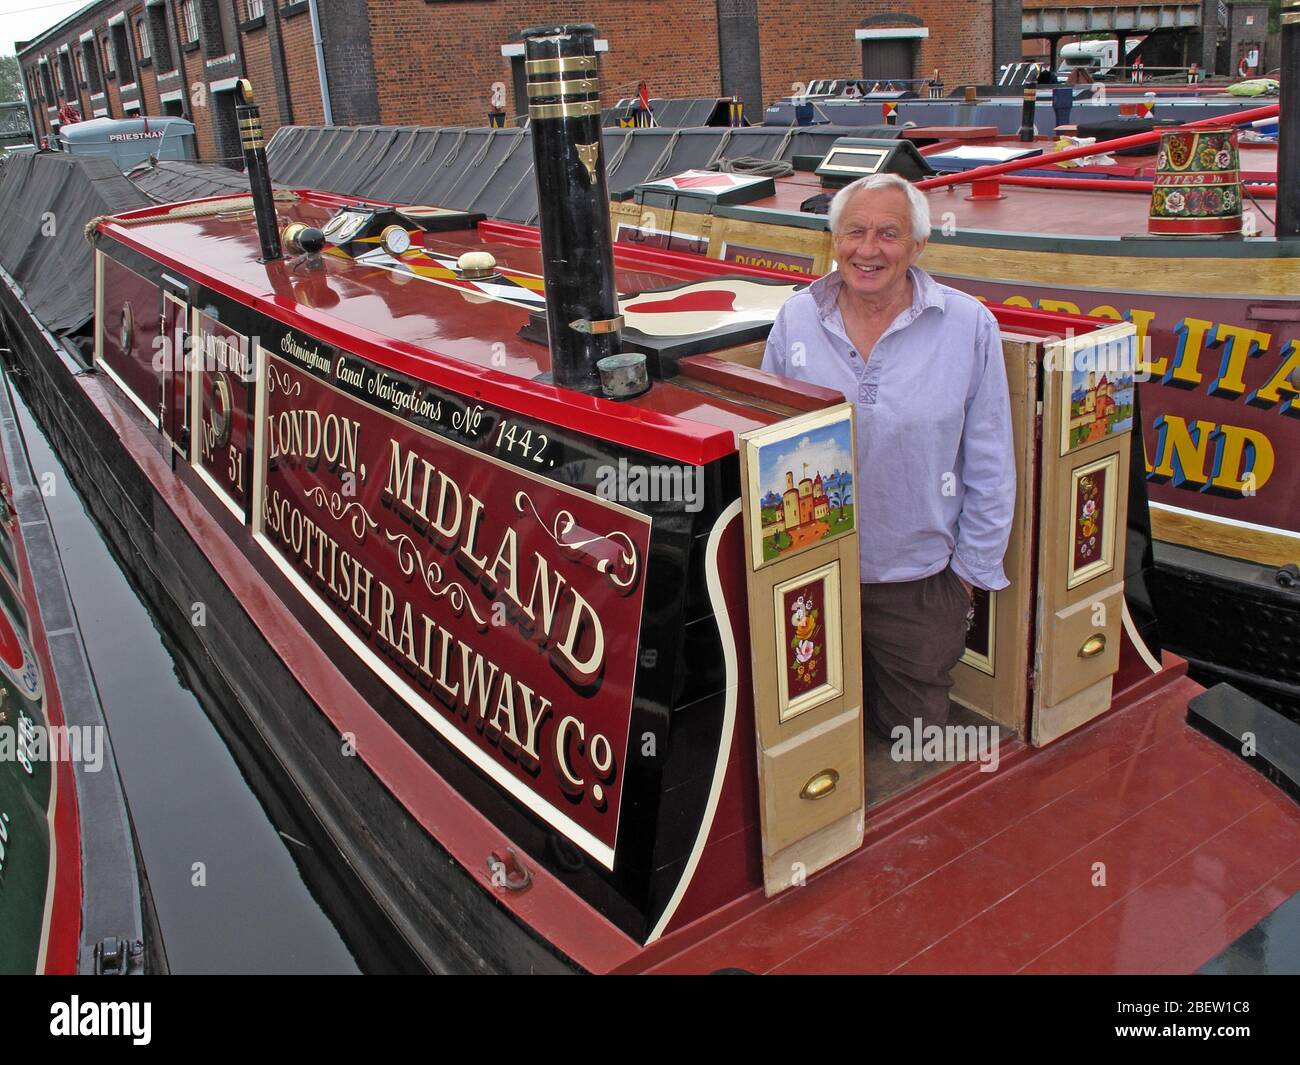 GoTonySmith,@HotpixUK,HotpixUK,British canals,canal,network,boat,carrier,man,person,museum,heritage,transport,dock,docks,meets,Manchester Ship Canal,River Mersey,Cheshire,UK,England,North West England,sailor,boater,waterways,British canal system,water transport,United Kingdom,Industrial Revolution,transportation,water,nationwide canal network,nationwide,canal network,working canal boats,canal transport,tourism,CH65,London Midland Scottish Railway Co,Scottish Railway Co